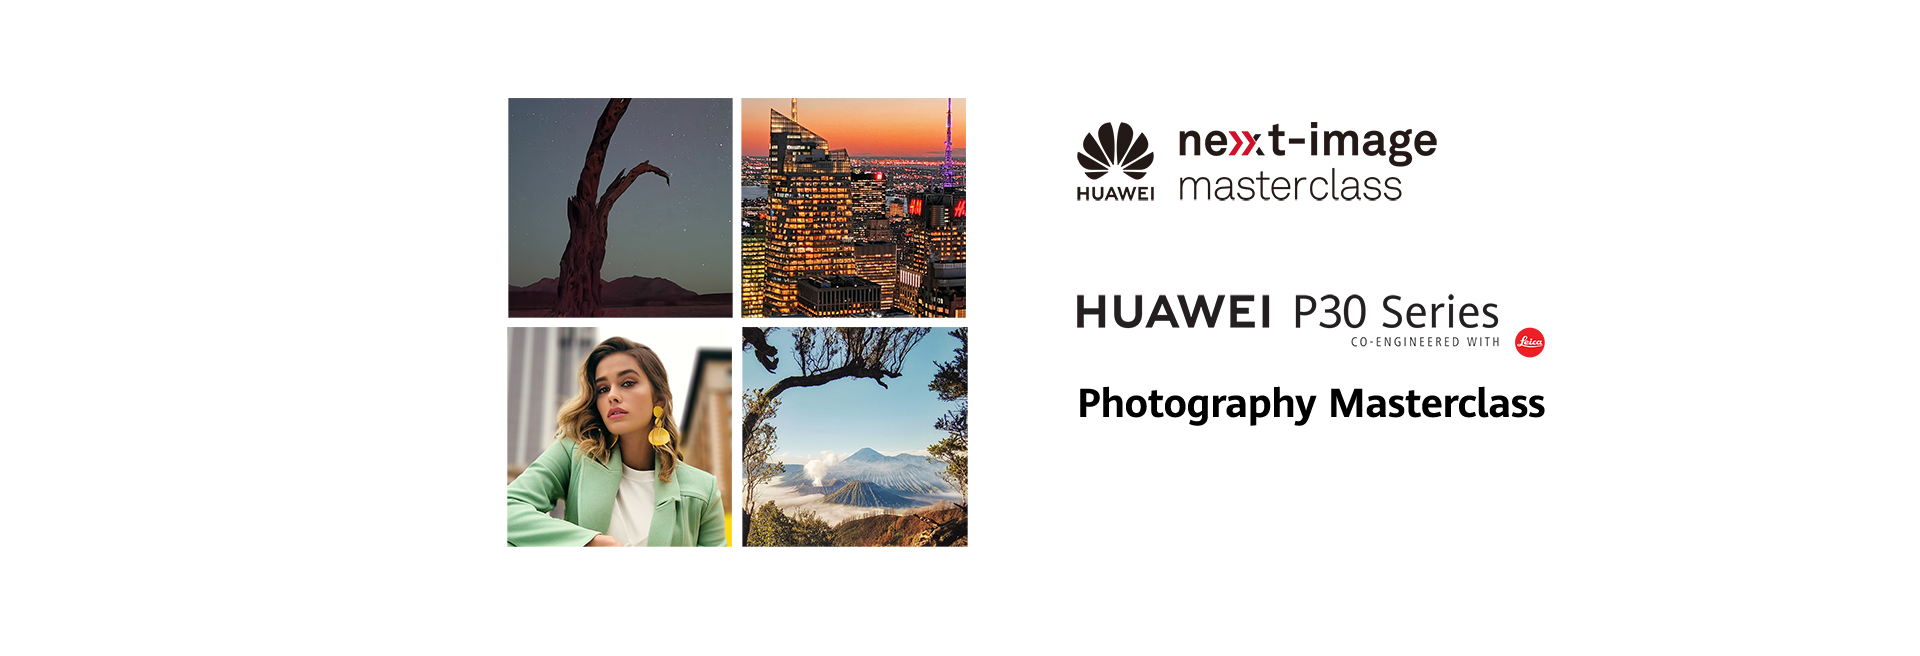 HUAWEI P30 Series Photography Masterclass